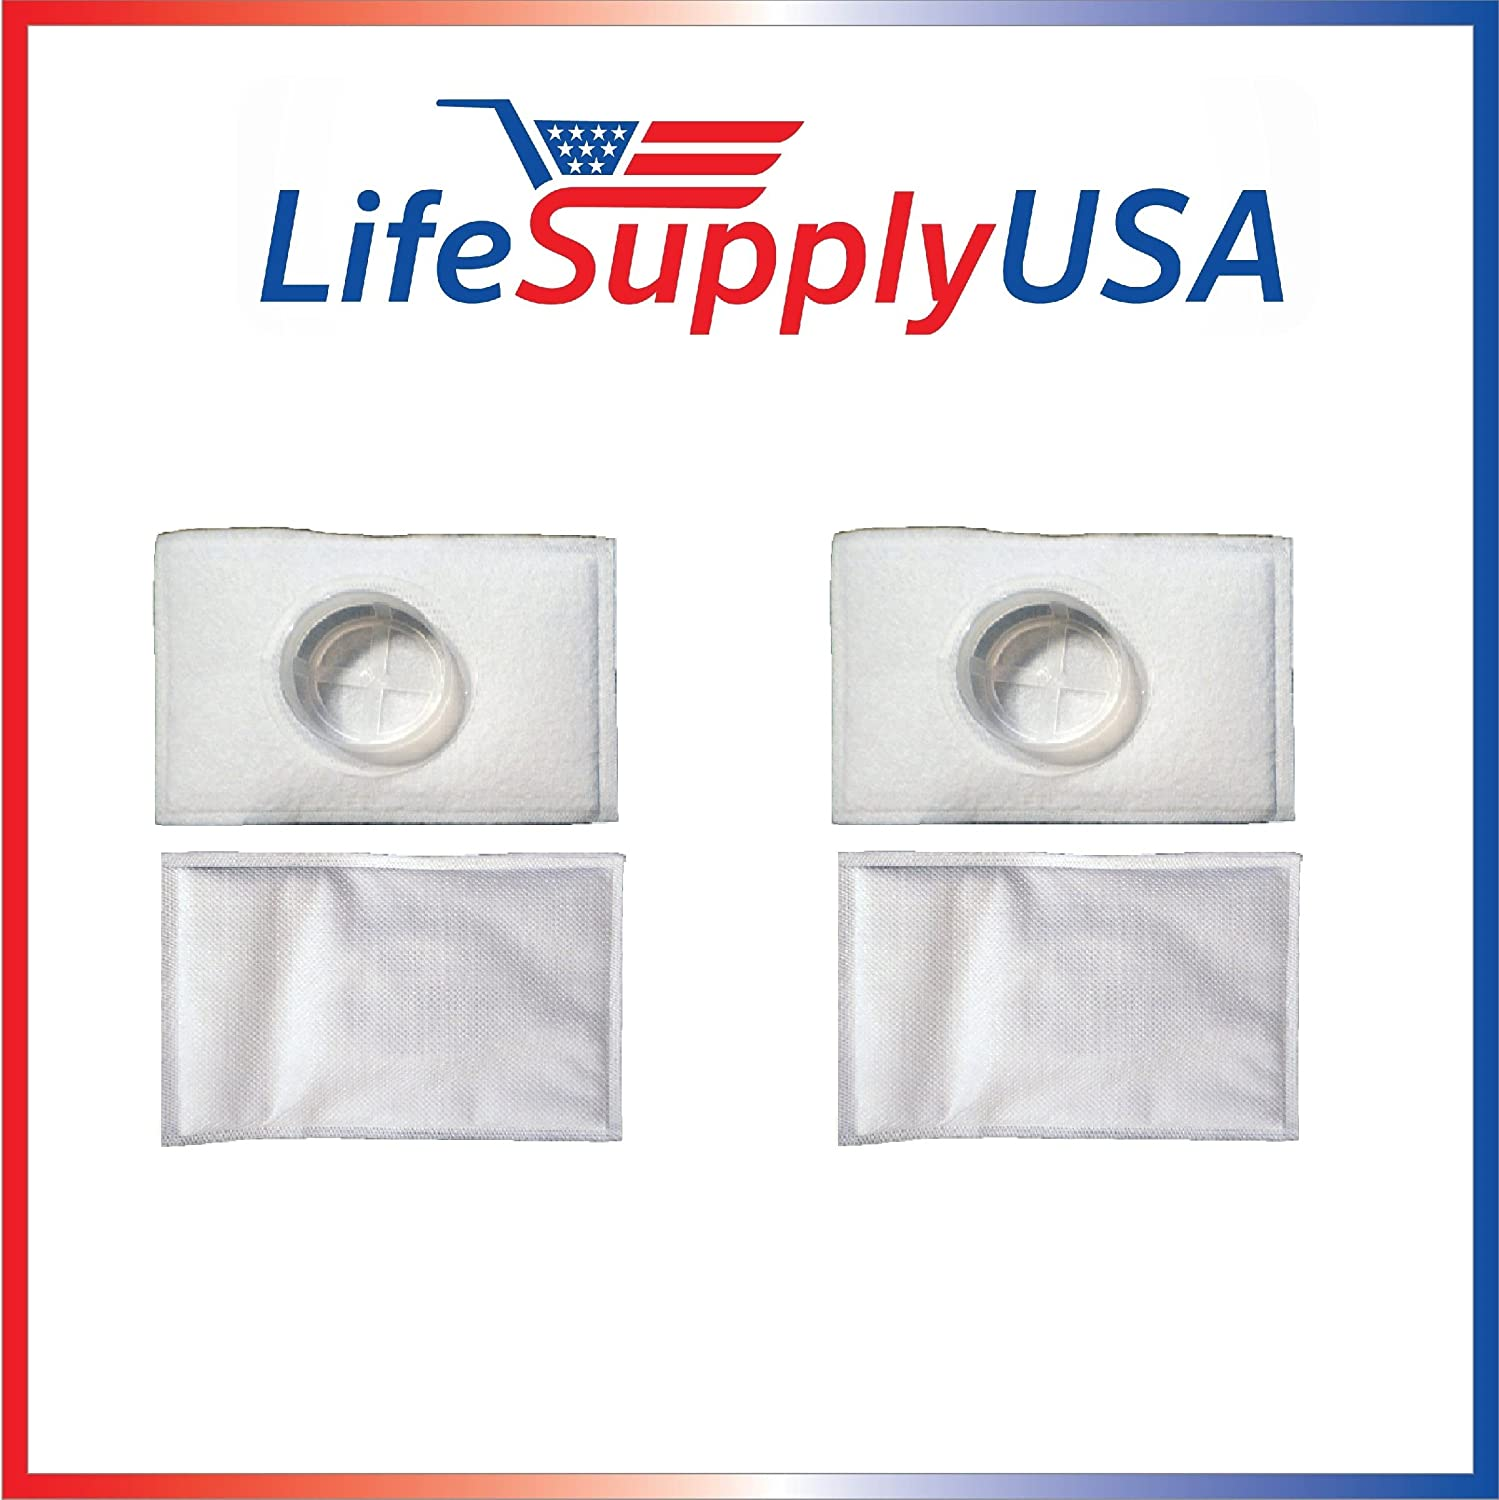 LifeSupplyUSA 4 Pack Filter Compatible with Electrolux Aerus Canister Vacuum HEPA Micro electrostatic Filter LE 2100, Ap100, Diplomat, Ambassador, Epic 6500, Full Kit, 200 350 622 10, 079